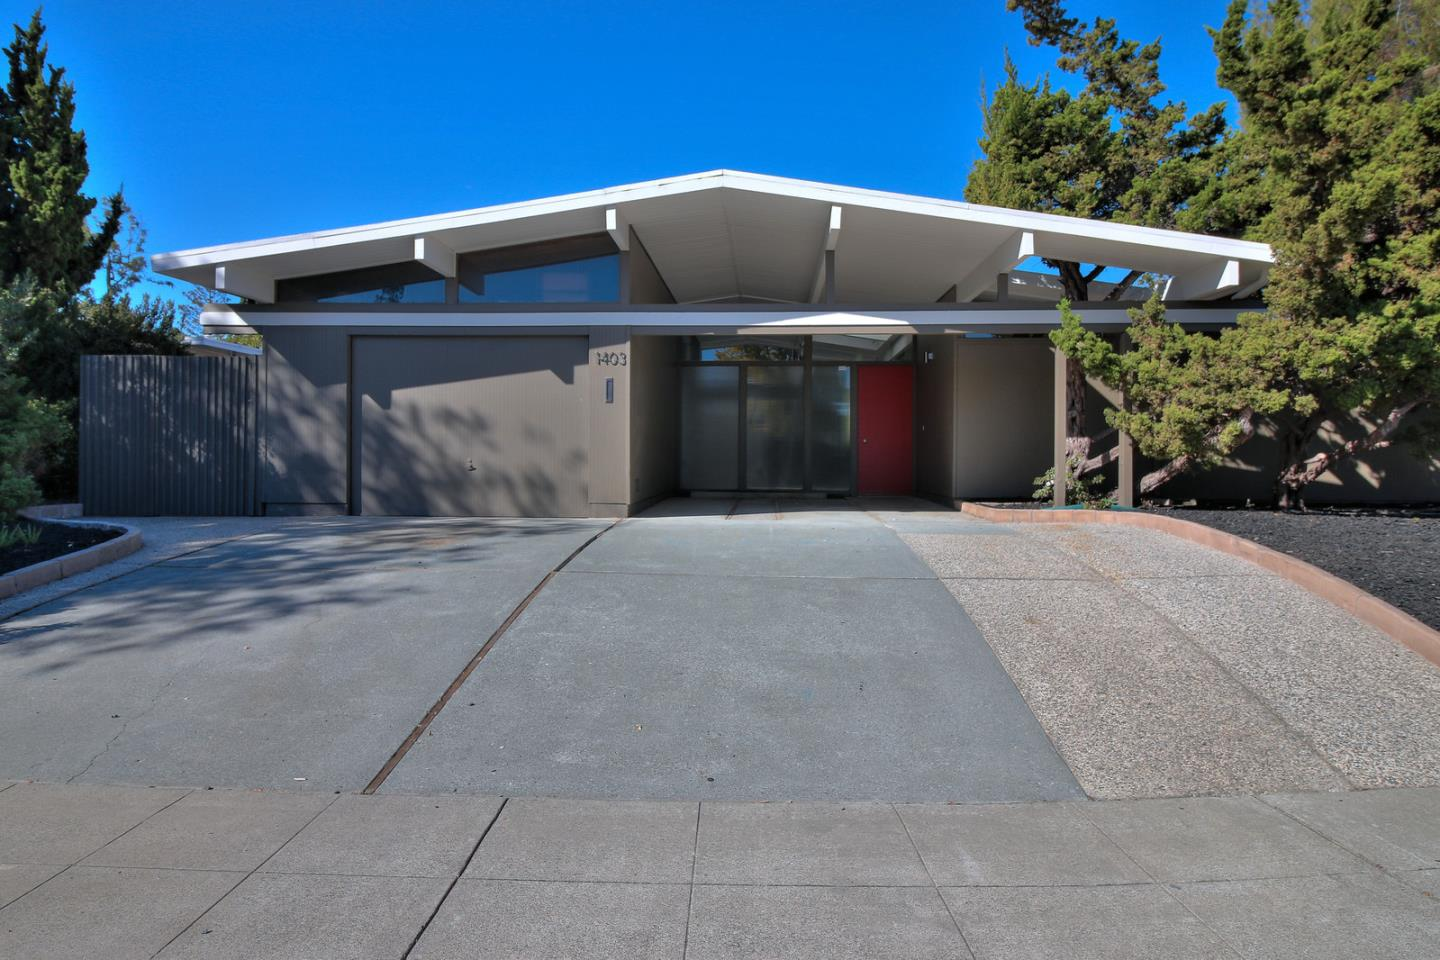 Detail Gallery Image 1 of 1 For 1403 Mallard Way, Sunnyvale, CA, 94087 - 4 Beds   2 Baths